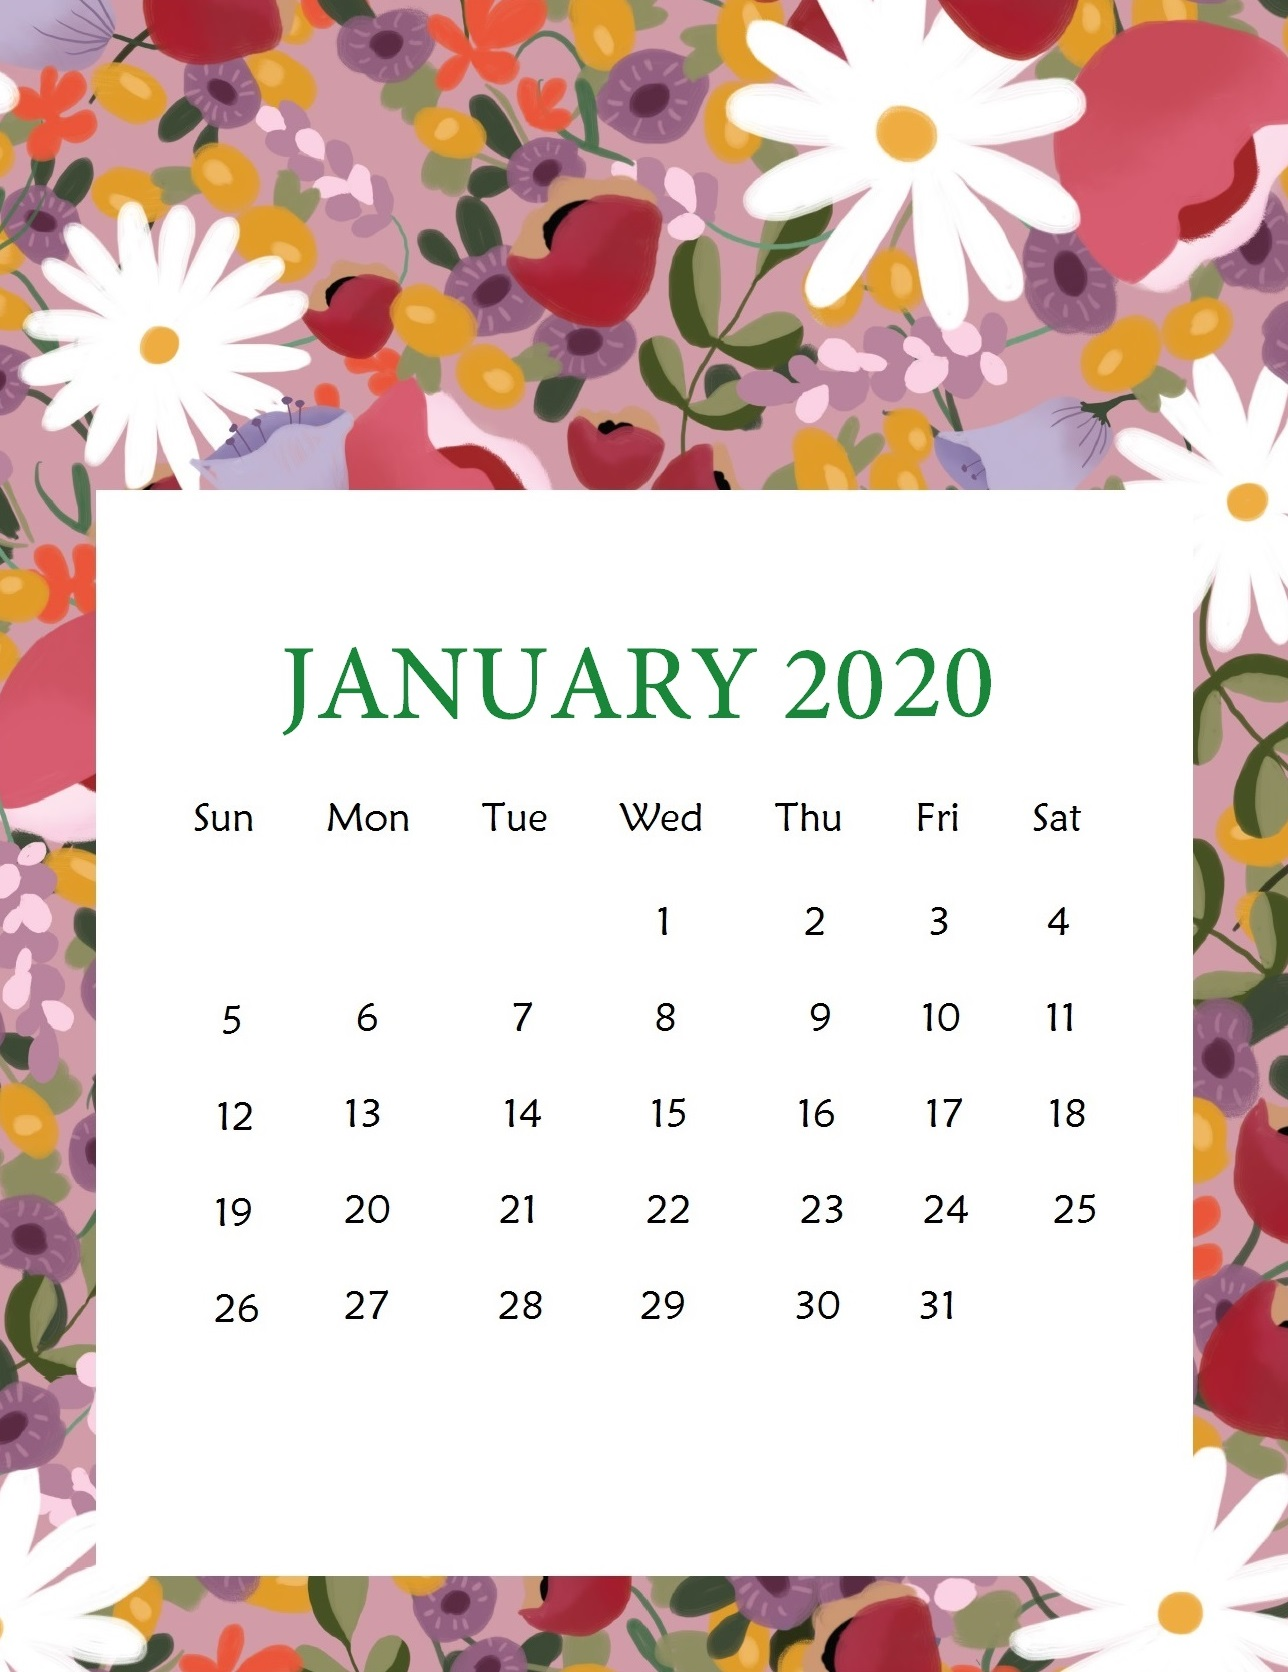 January 2020 Cute Calendar Wallpaper